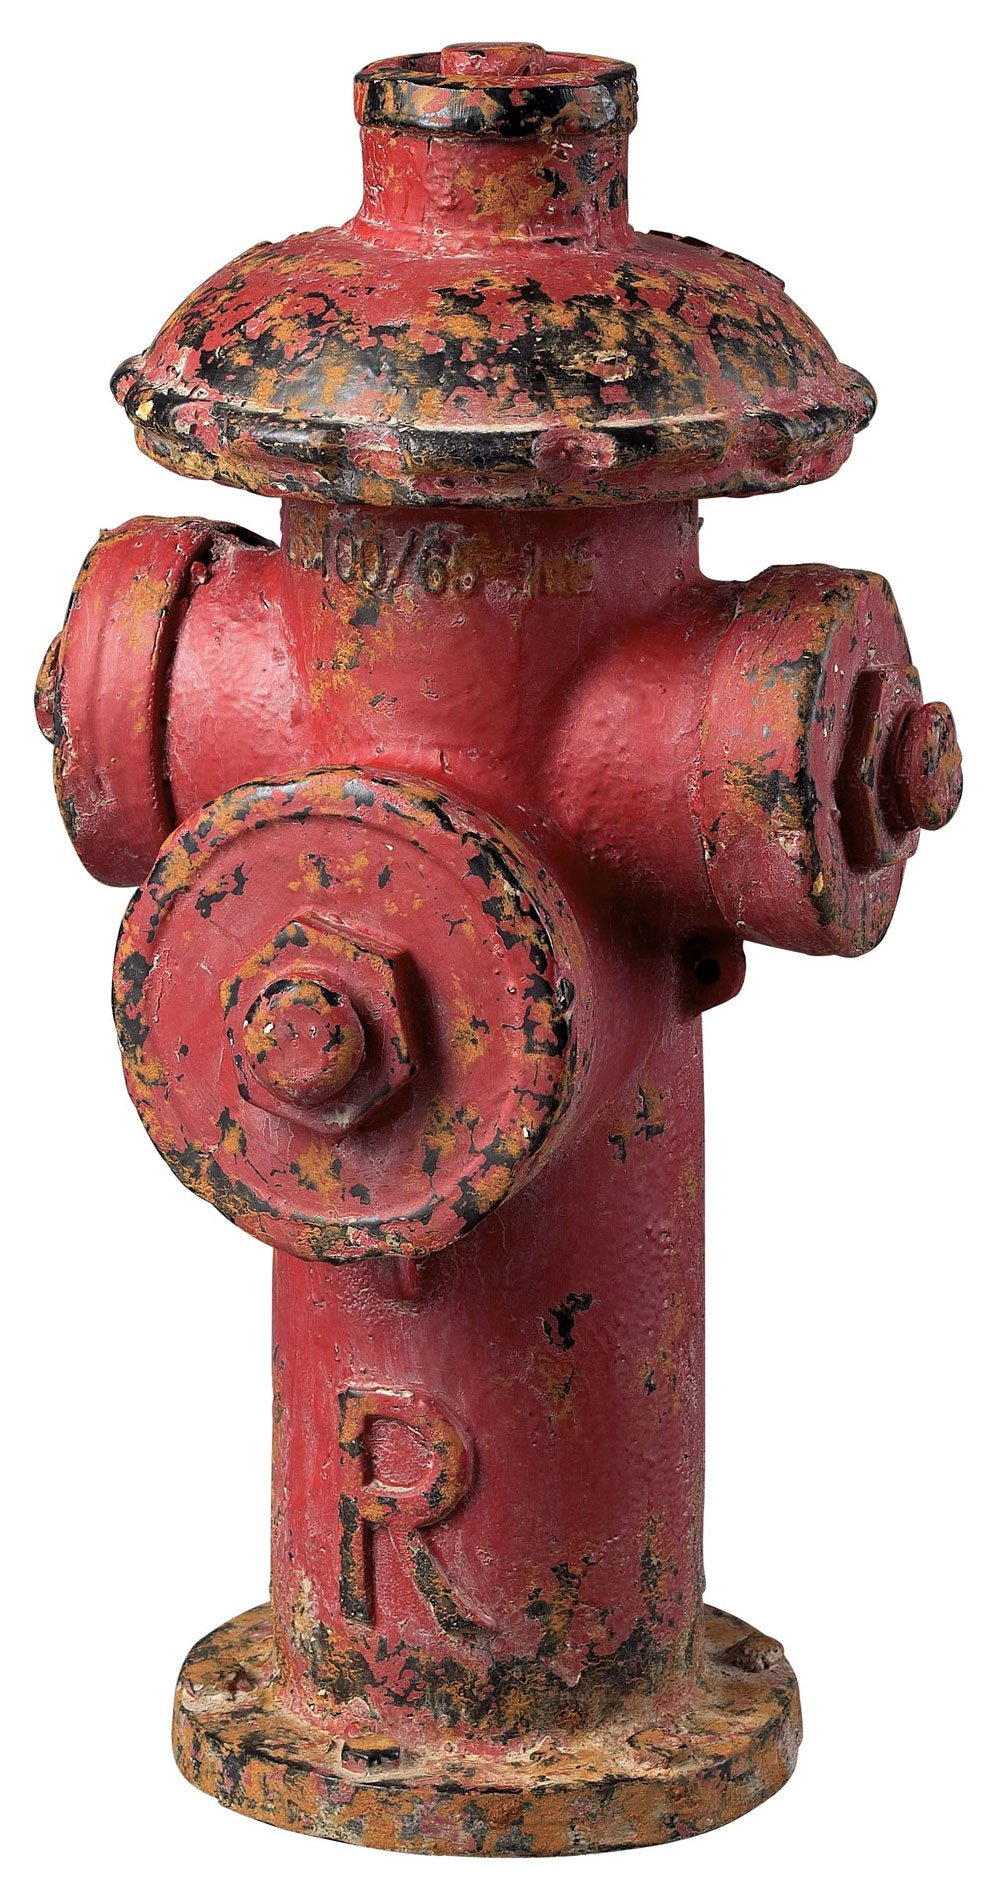 Sterling 129-1025 Composite Red Finish Fire Hydrant Decor, 20 by 11-Inch